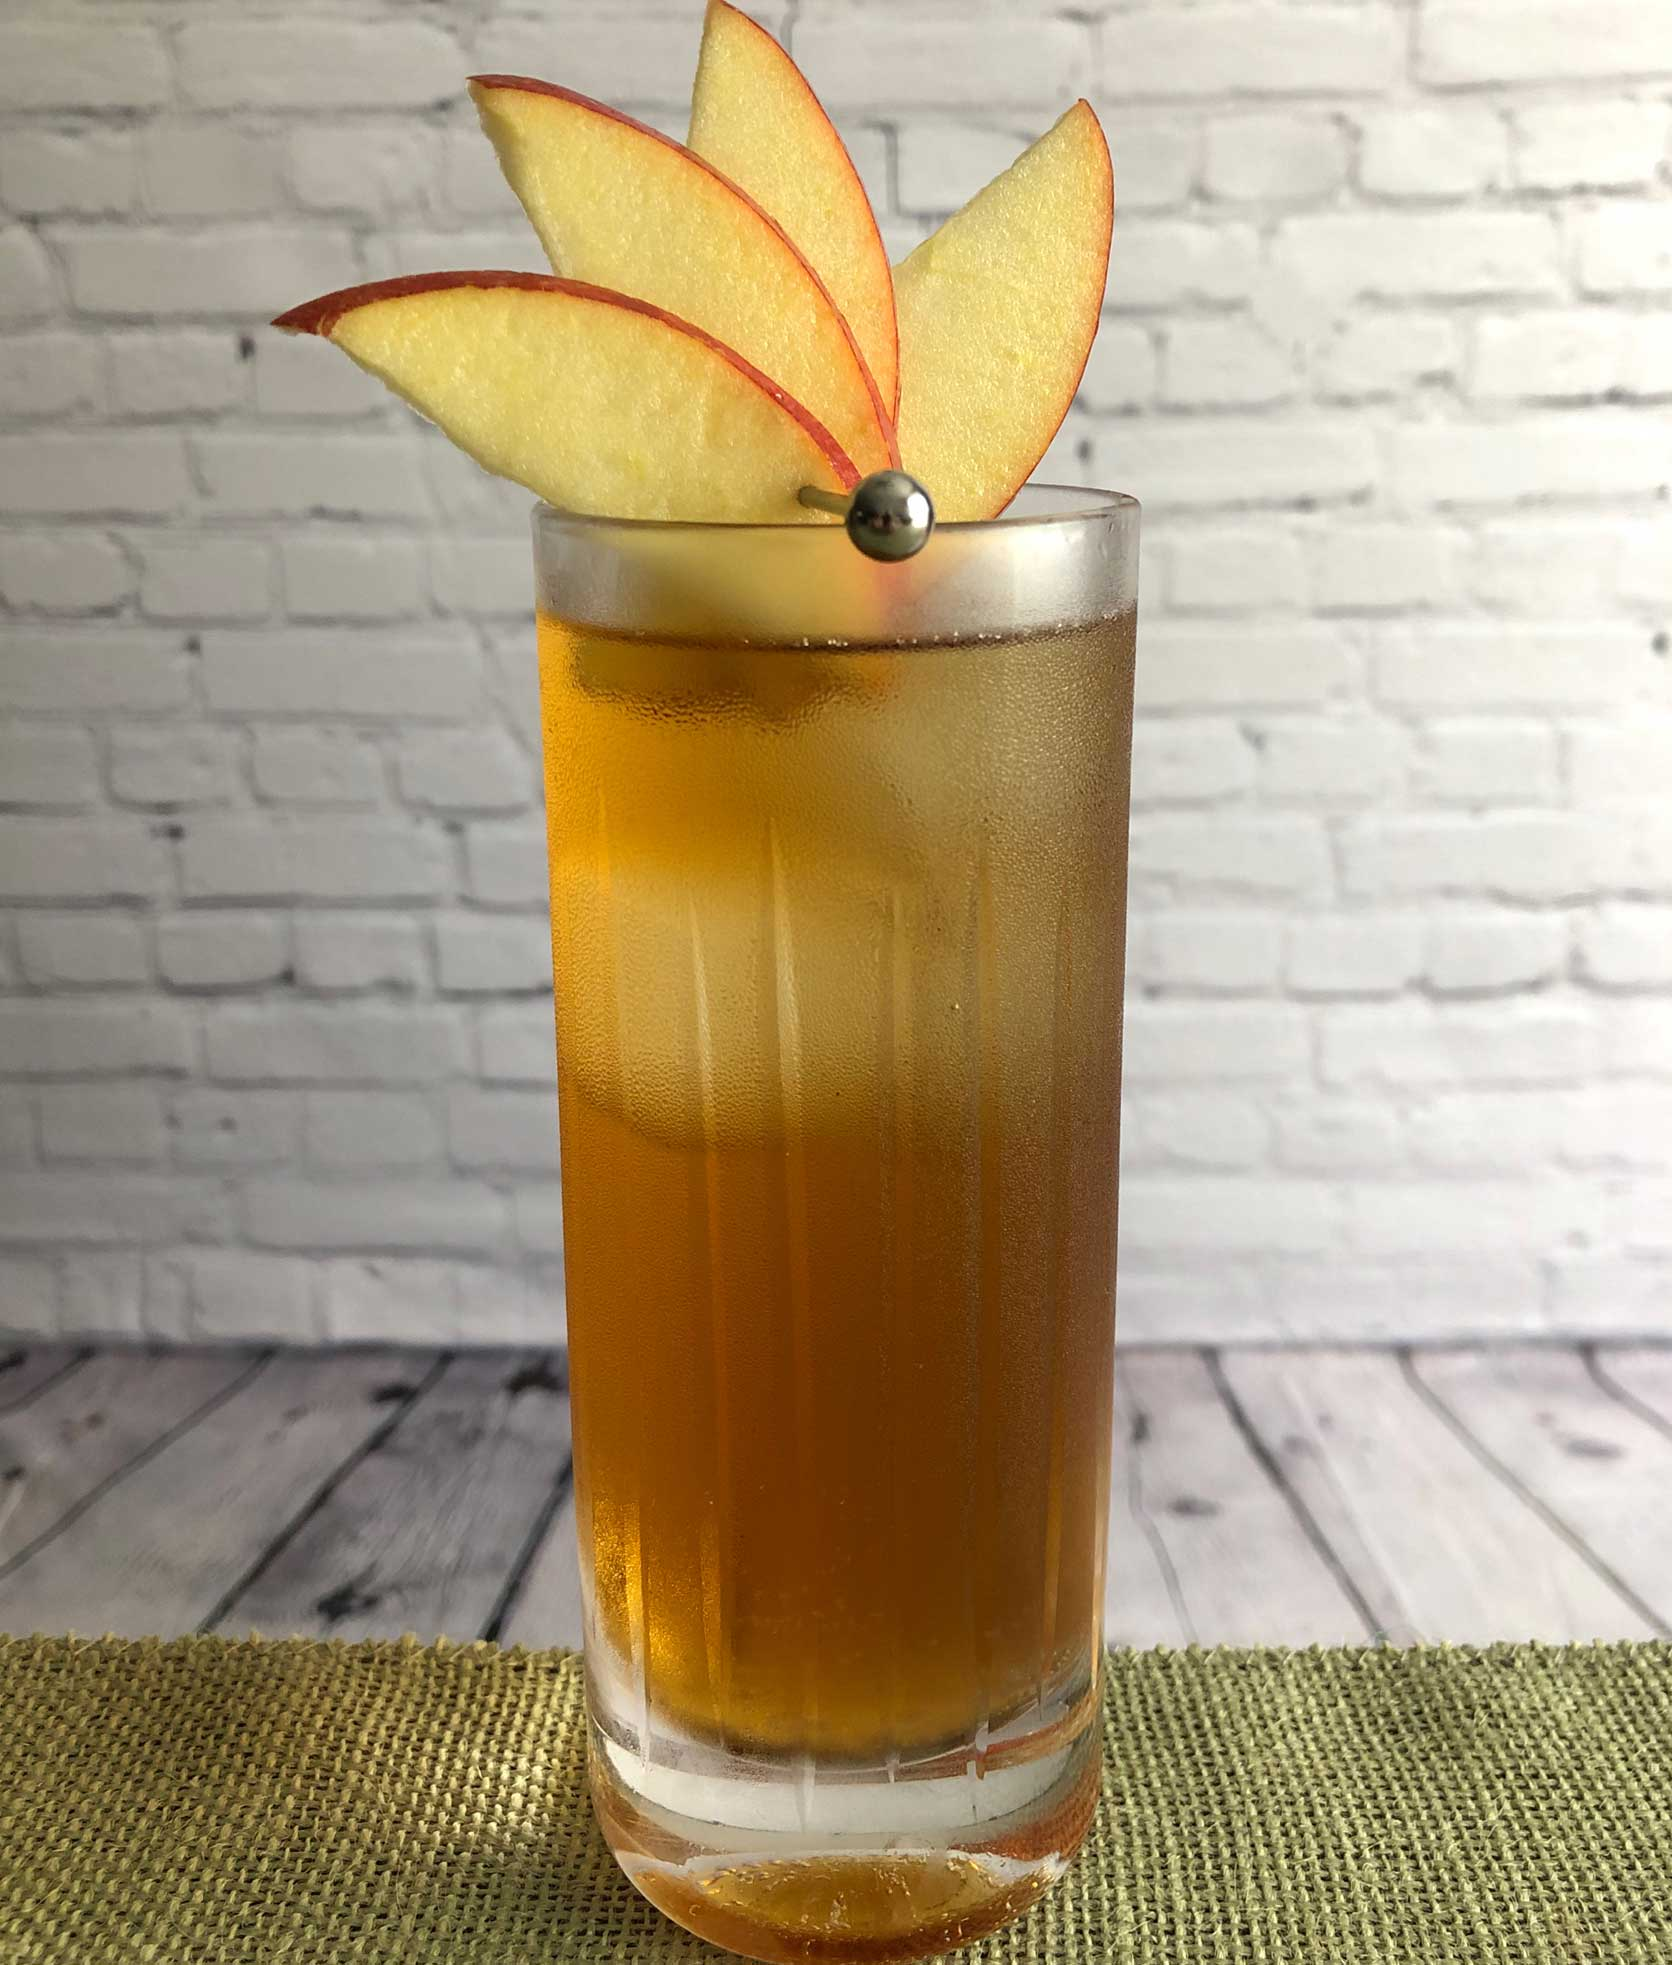 An example of the Picket Fence, the mixed drink (cocktail) featuring Cardamaro Vino Amaro, sweet cider, and ginger beer; photo by Lee Edwards